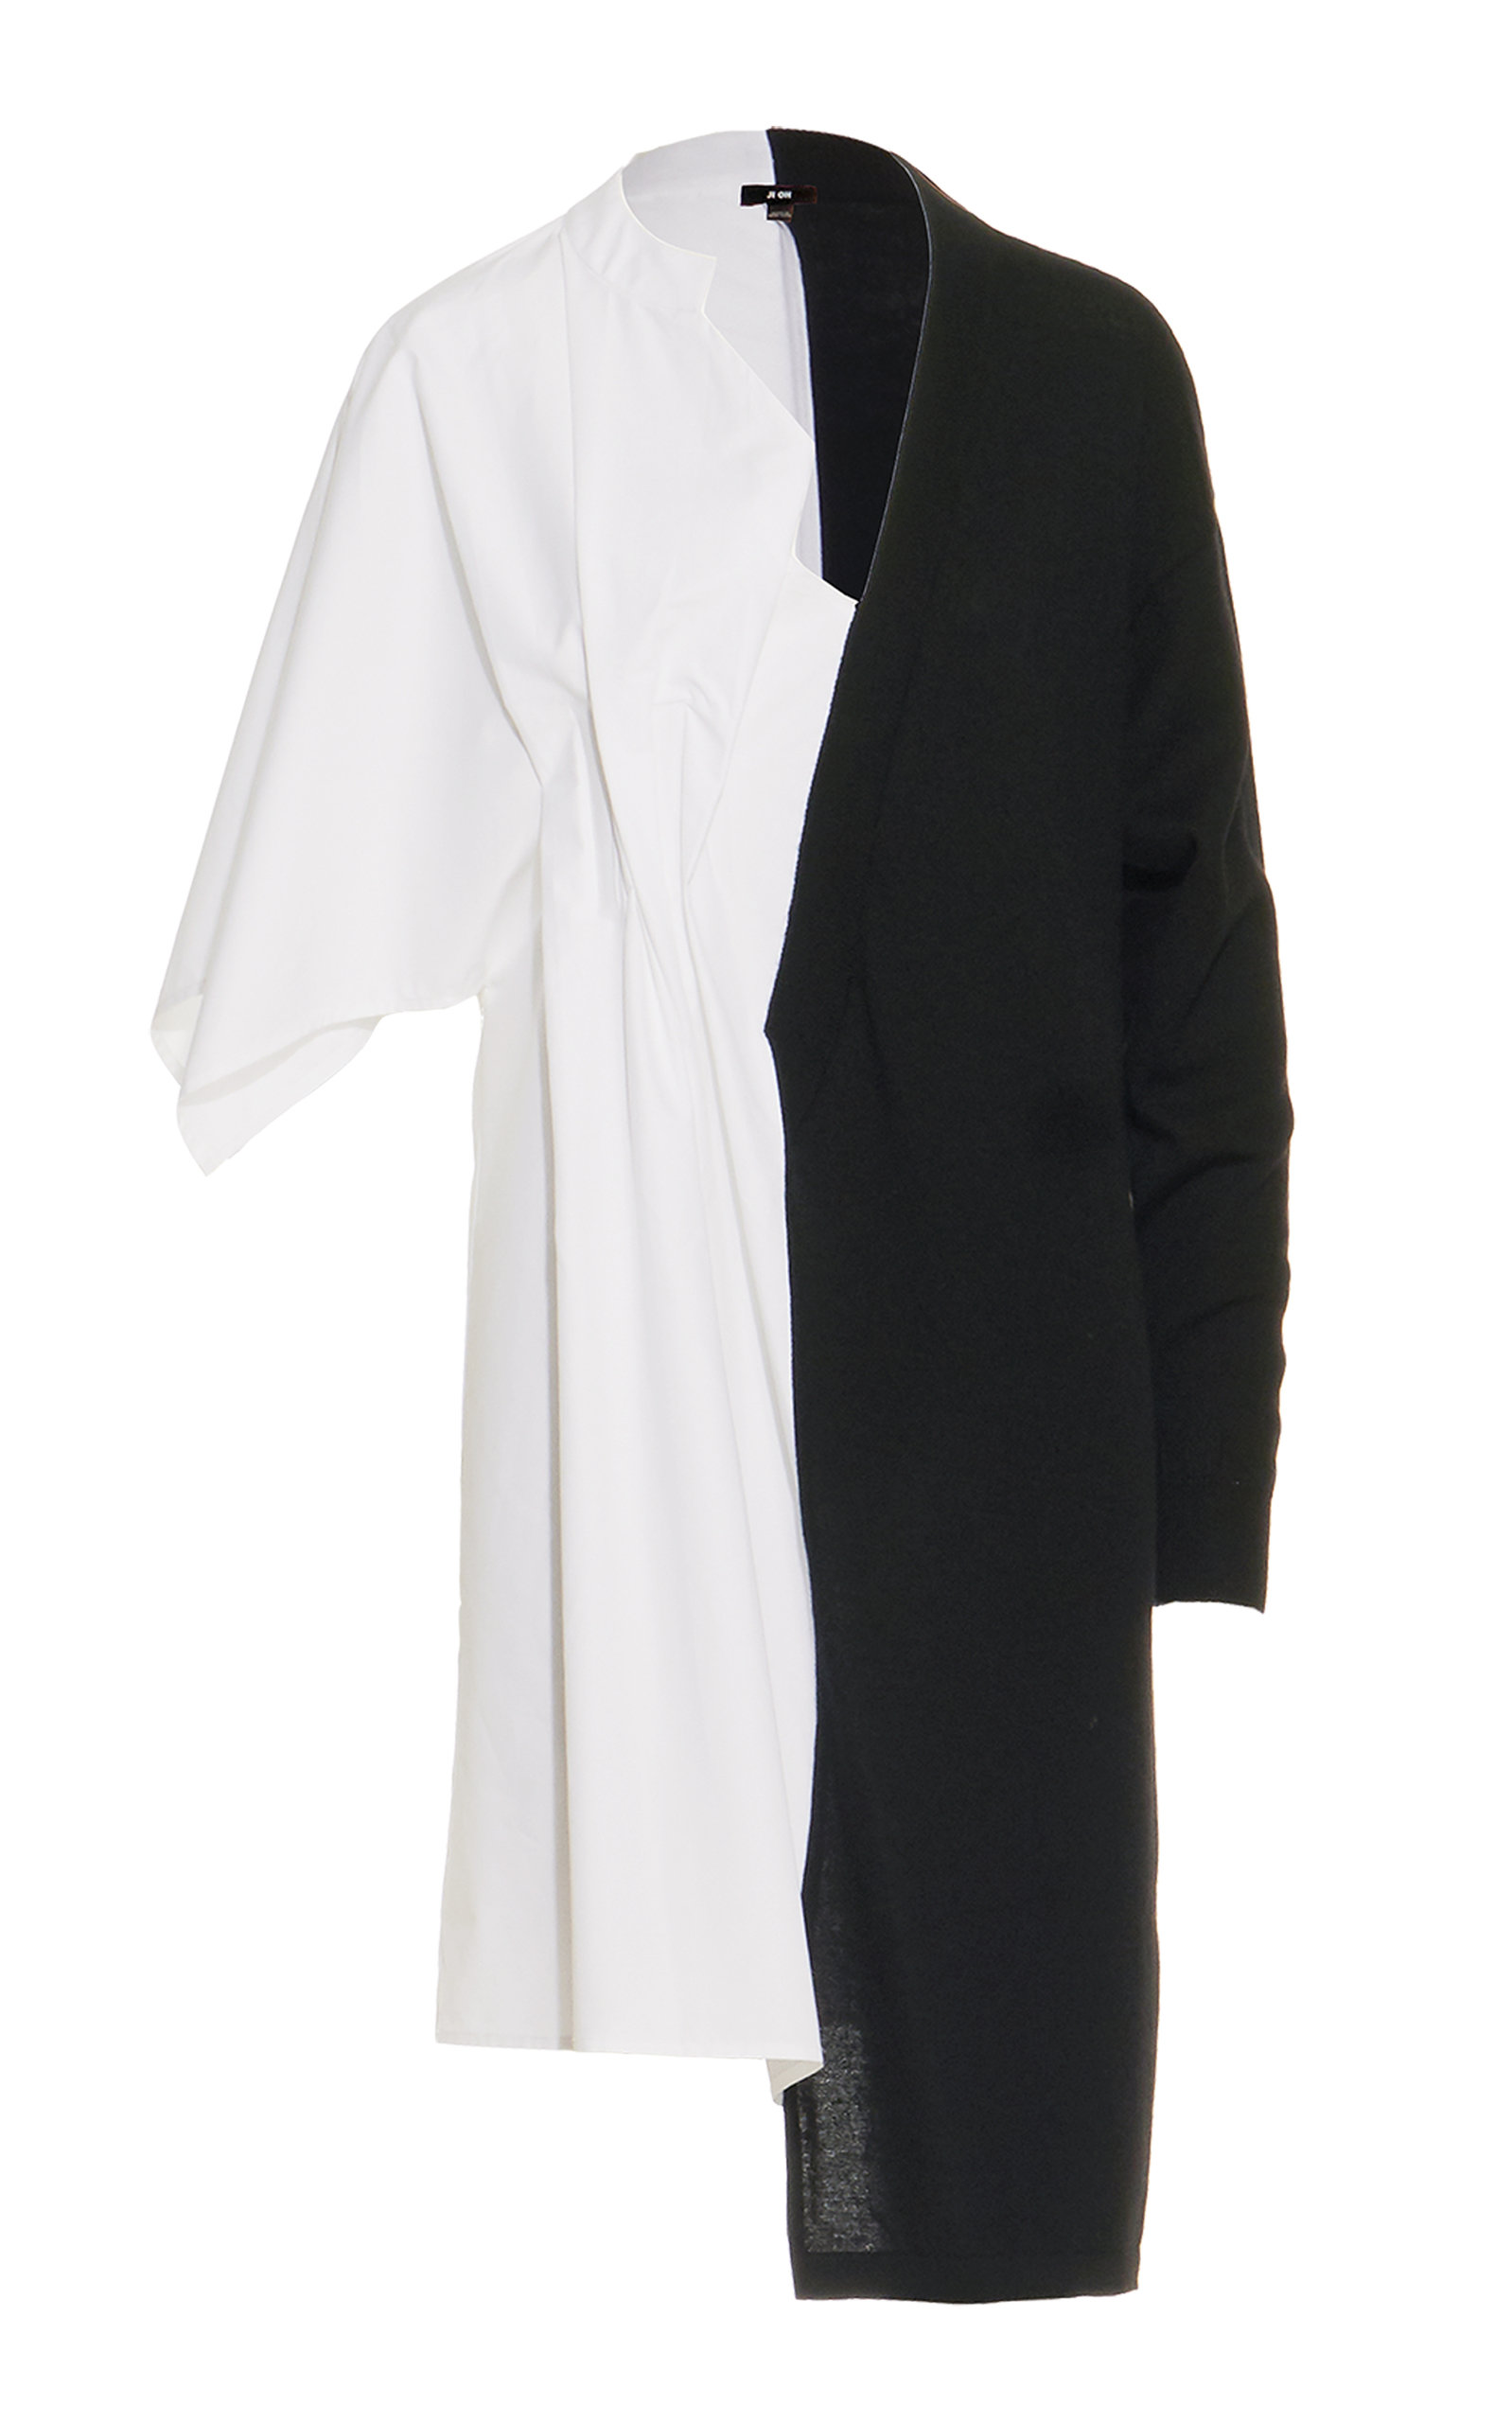 JI OH Half Sweater Shirt Dress in Black/White